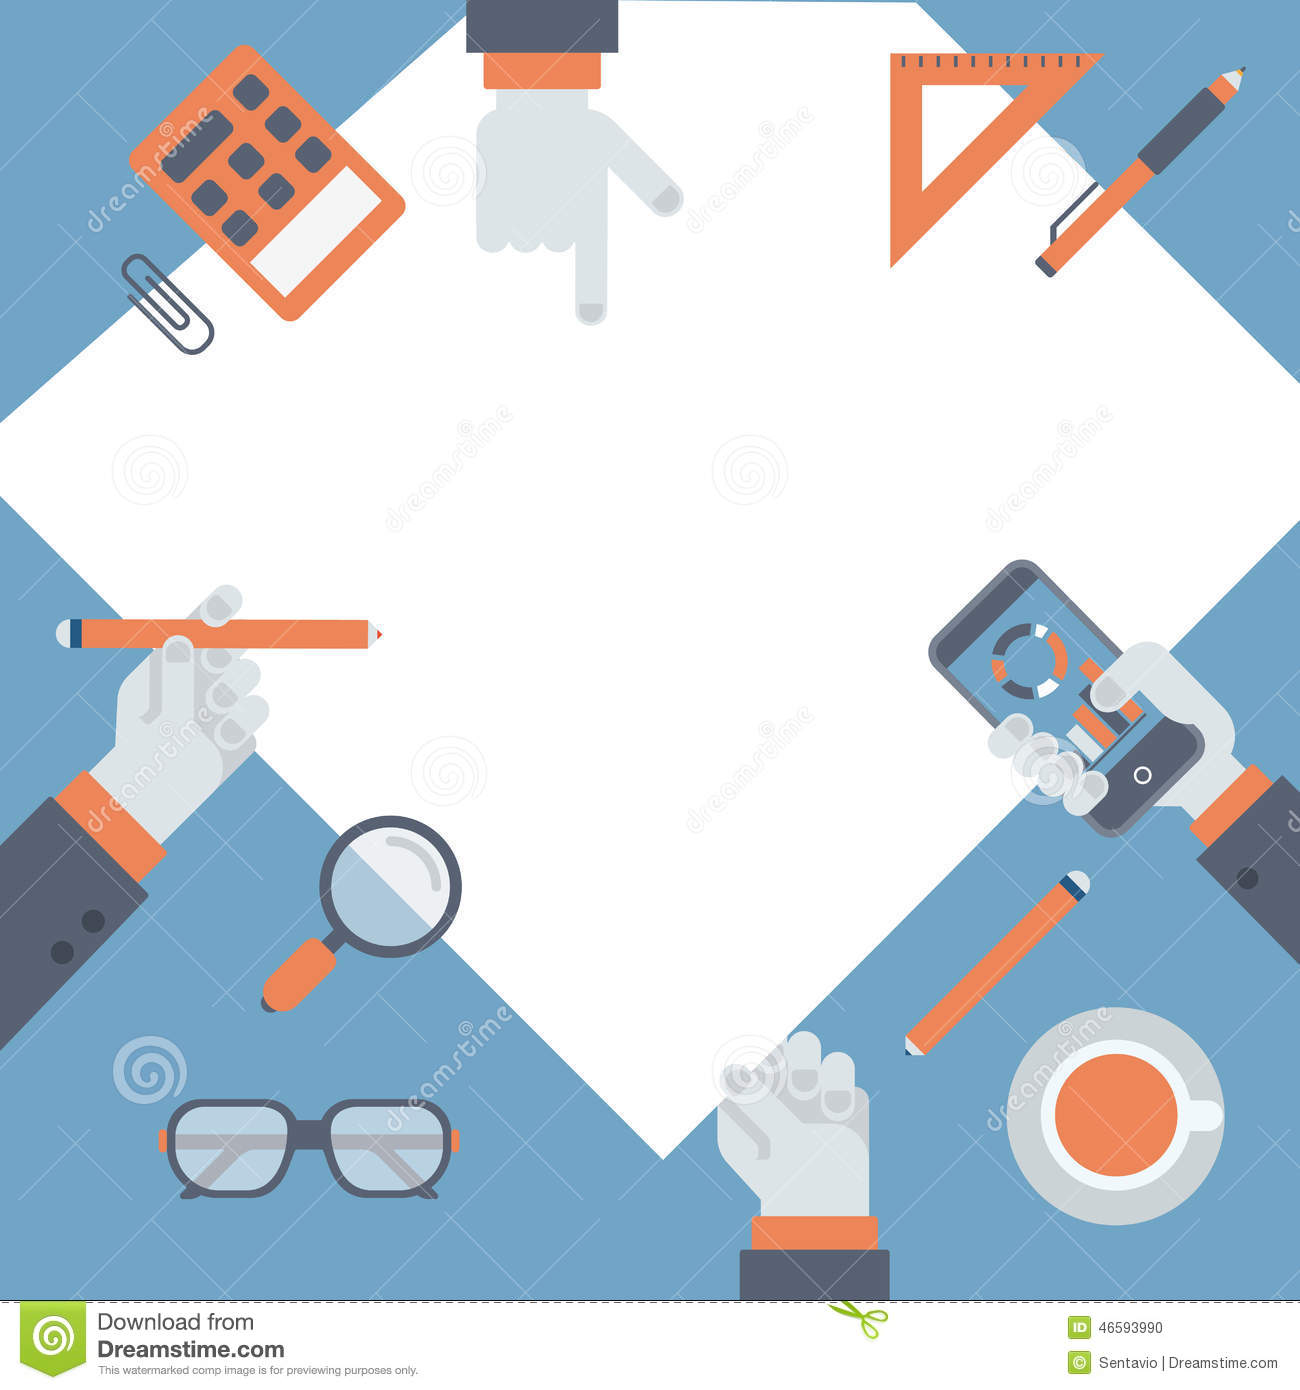 Flat Project Management Business Research New Idea Concept Stock Flat Project Management Business Research New Idea Concept Vector Illustration Infographics Icon Set Brainstorming Hands  Stock Photo Flat Project Management Business Research New Idea Concept Vector Illustration Infographics Icon Set Brainstorming Hands Image